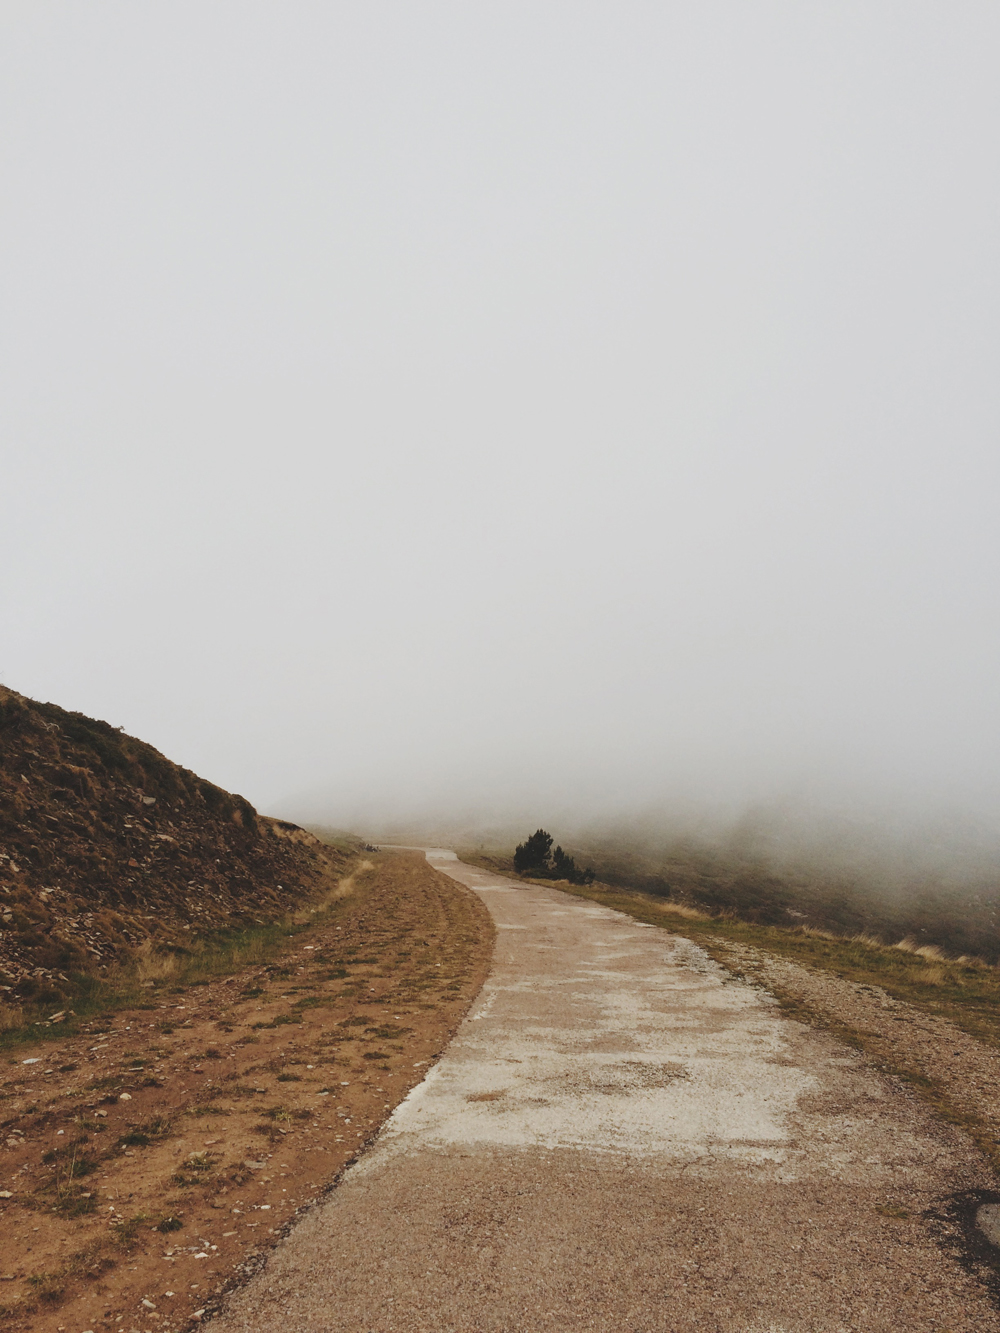 Setting a goal is important, but what you do on the way to that goal determines whether you will ever get there at all. So what kind of goal is looming large before you, tempting you to quit? Take that goal and break it down. Figure out what your first mini-goal will be. Get yourself to the bridge, then to the tree, then to the bushes. Set enough mini-goals and all of a sudden the finish line will be in sight.